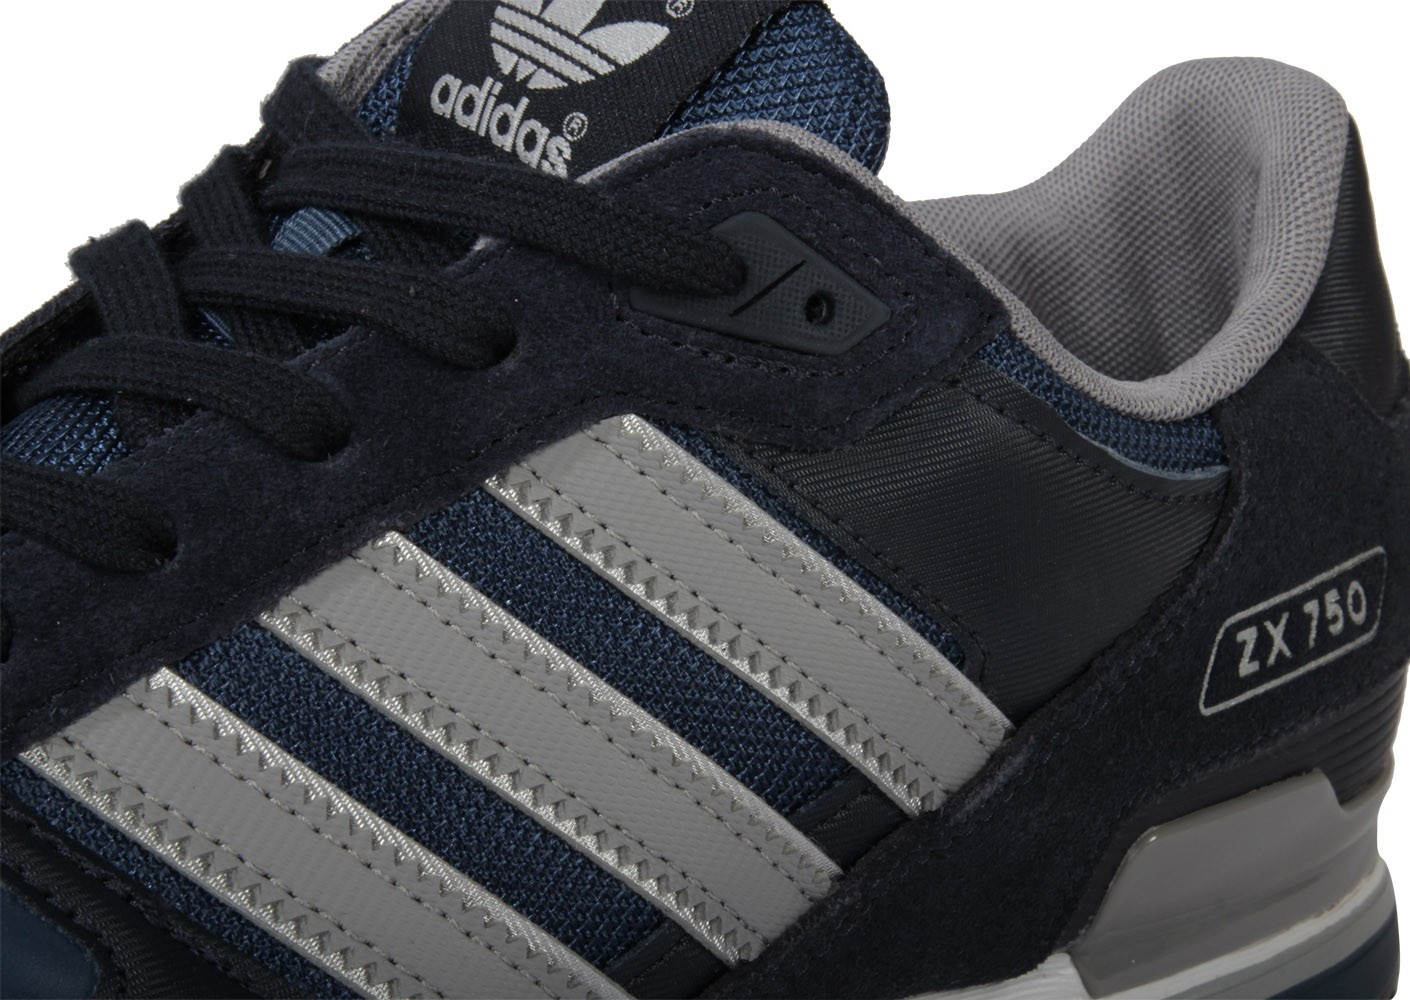 adidas zx 750 bleu nuit Off 51% - www.bashhguidelines.org